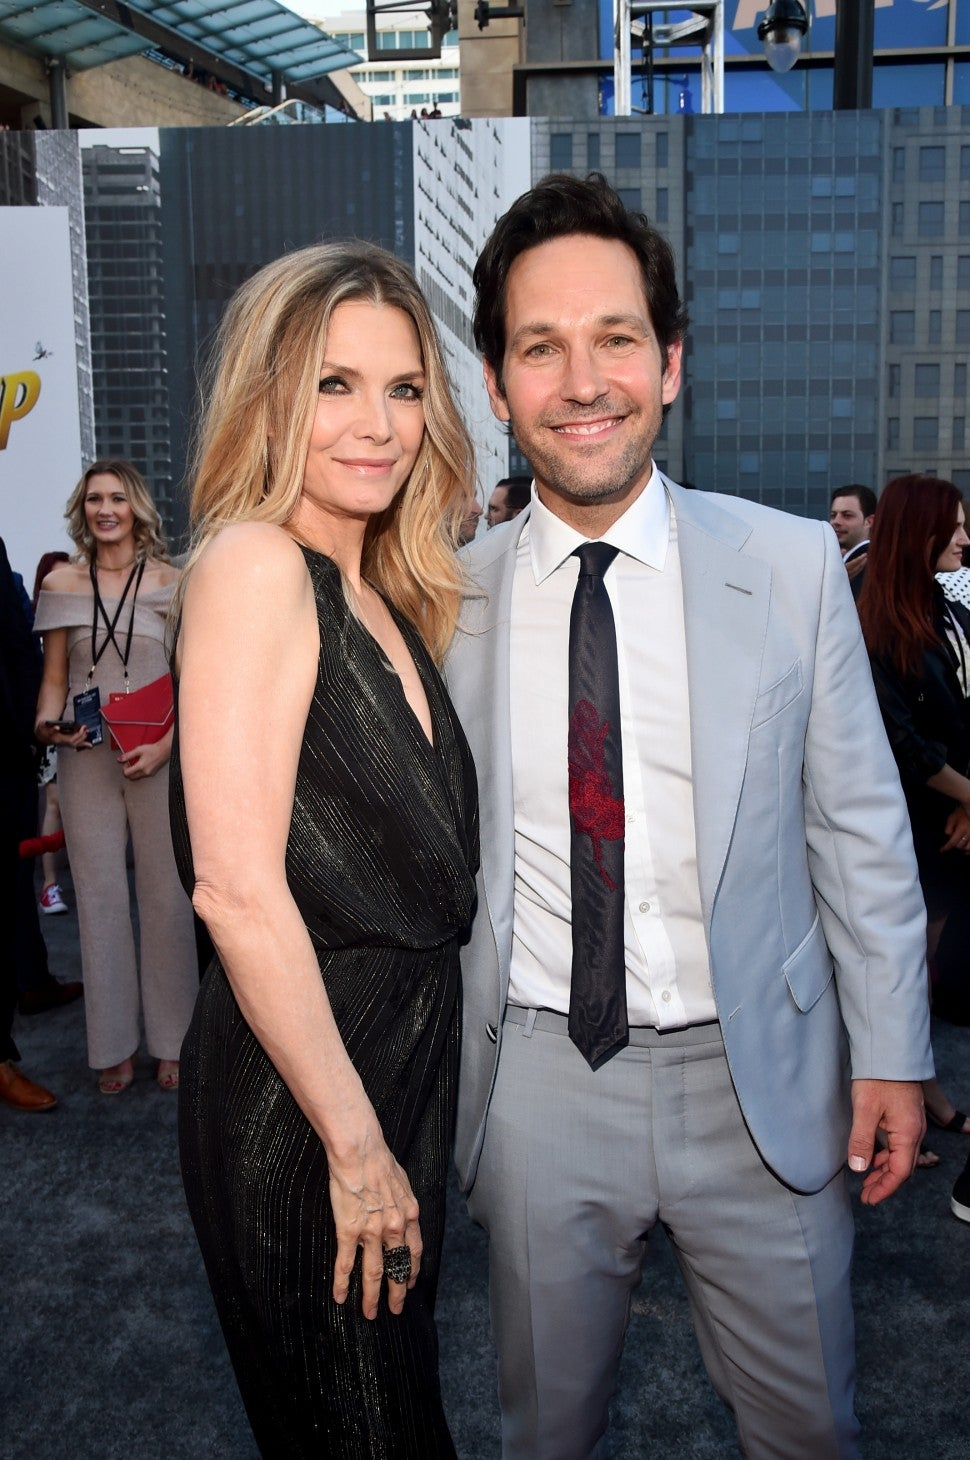 Michelle Pfeiffer and Paul Rudd at Ant-Man and the Wasp premiere